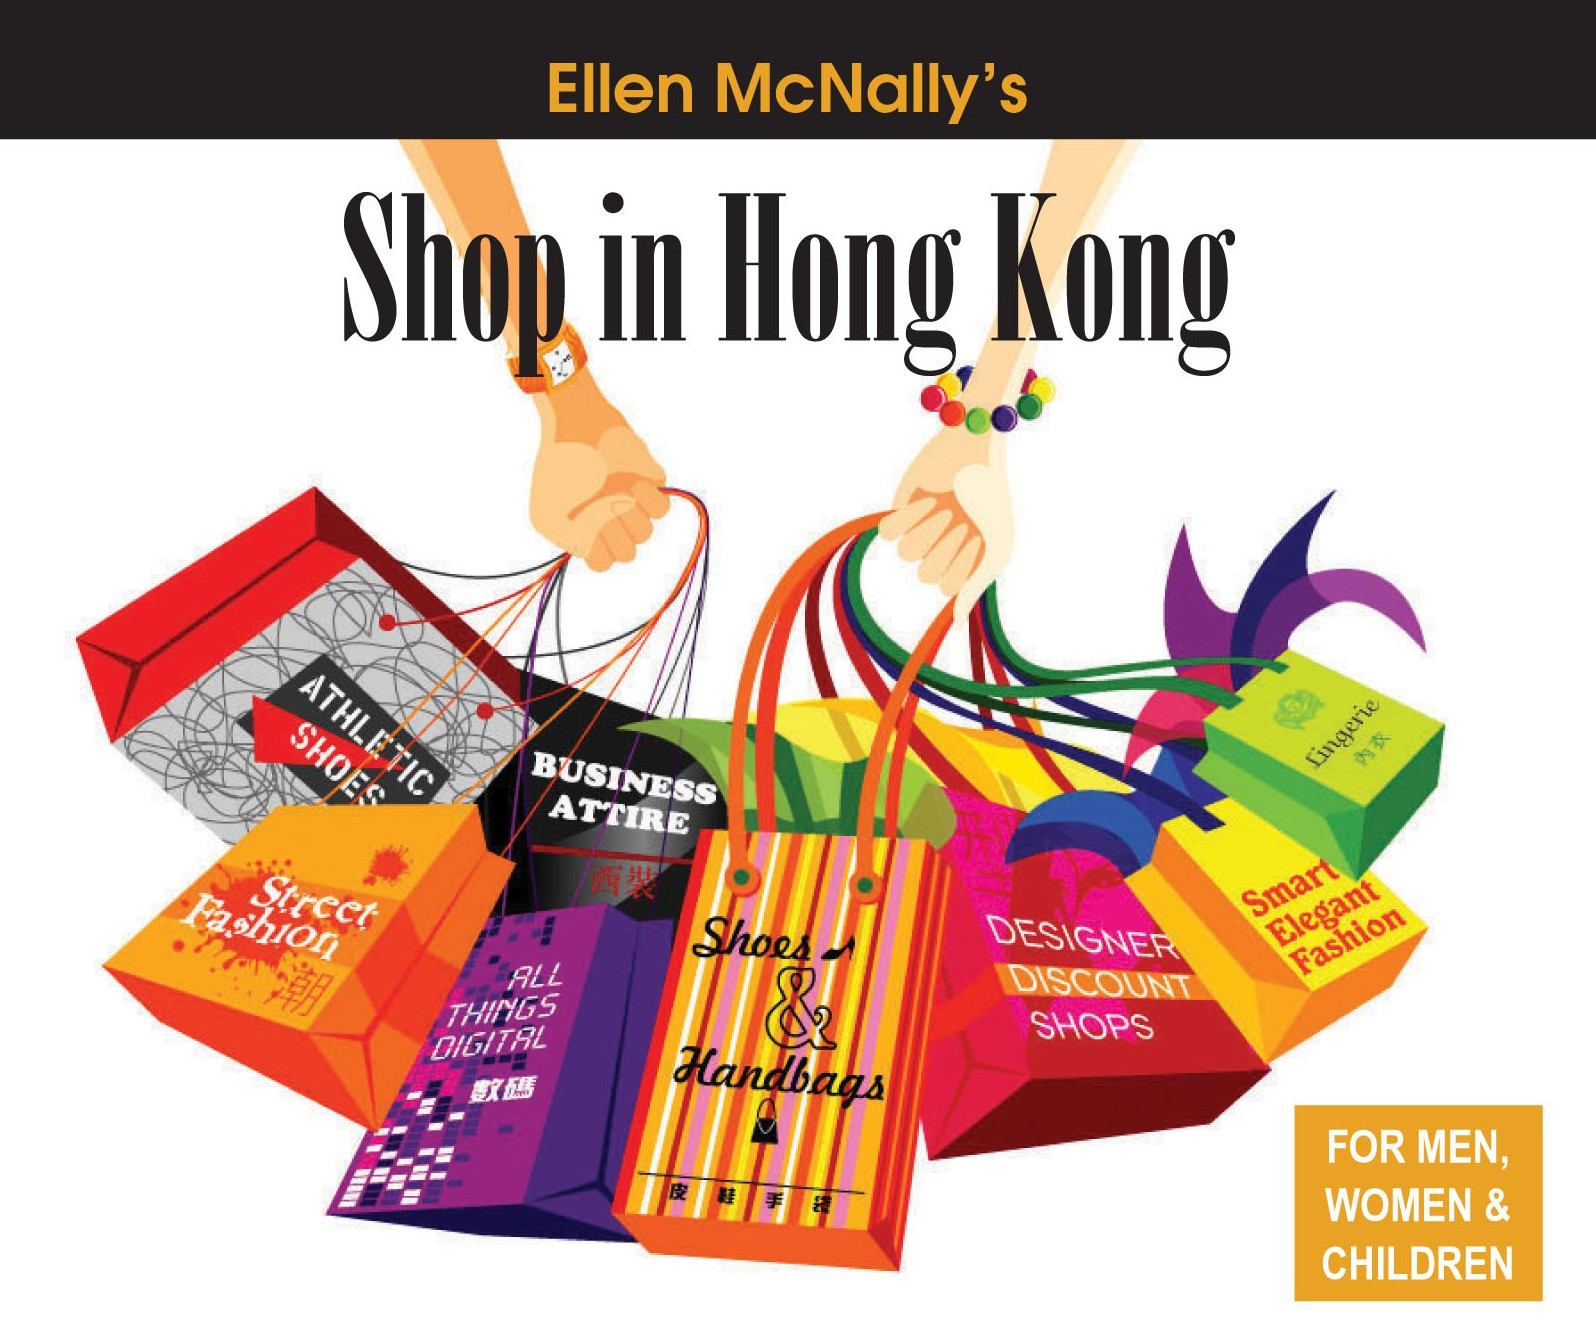 Hong Kong Shopping: Ellen's Shopping News: HONG KONG'S LUXURY DESIGNER